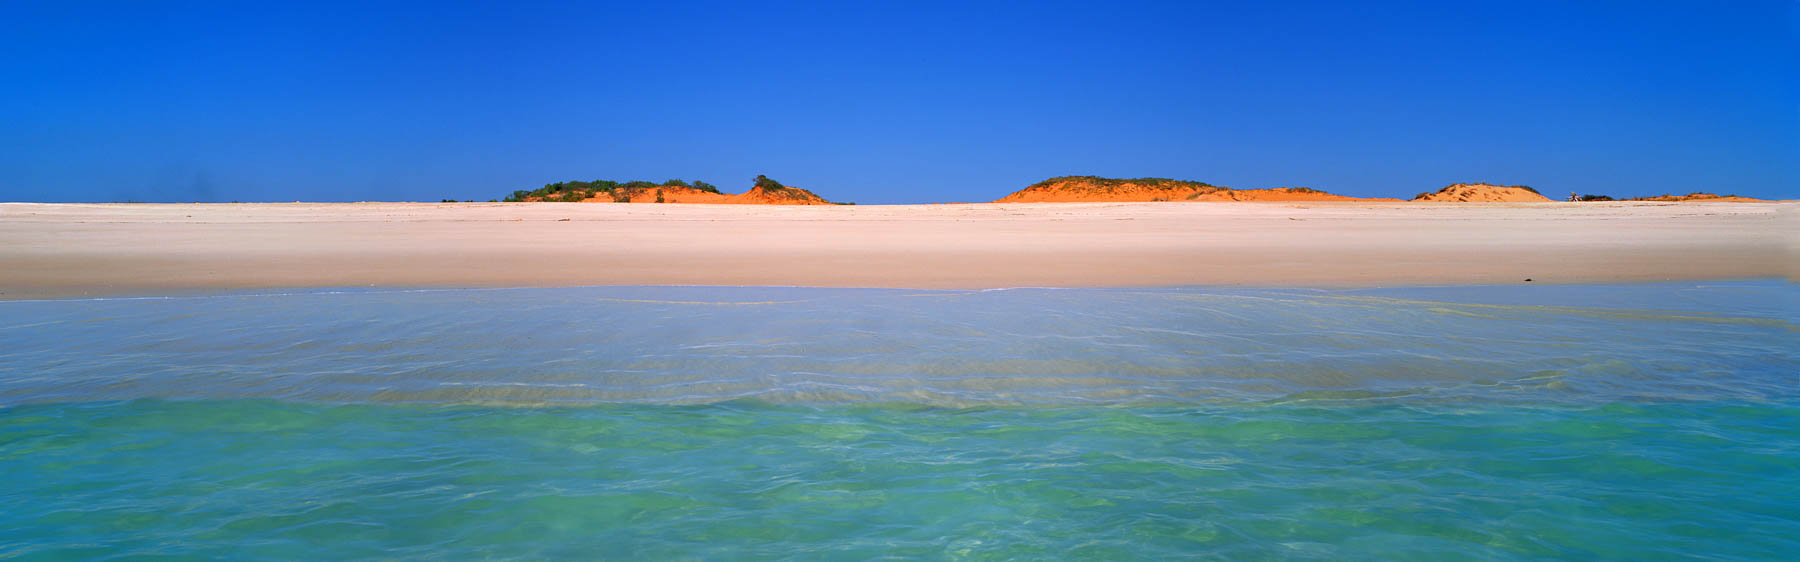 Turquoise water meets the pure white sand of Cape Leveque, WA, Australia.